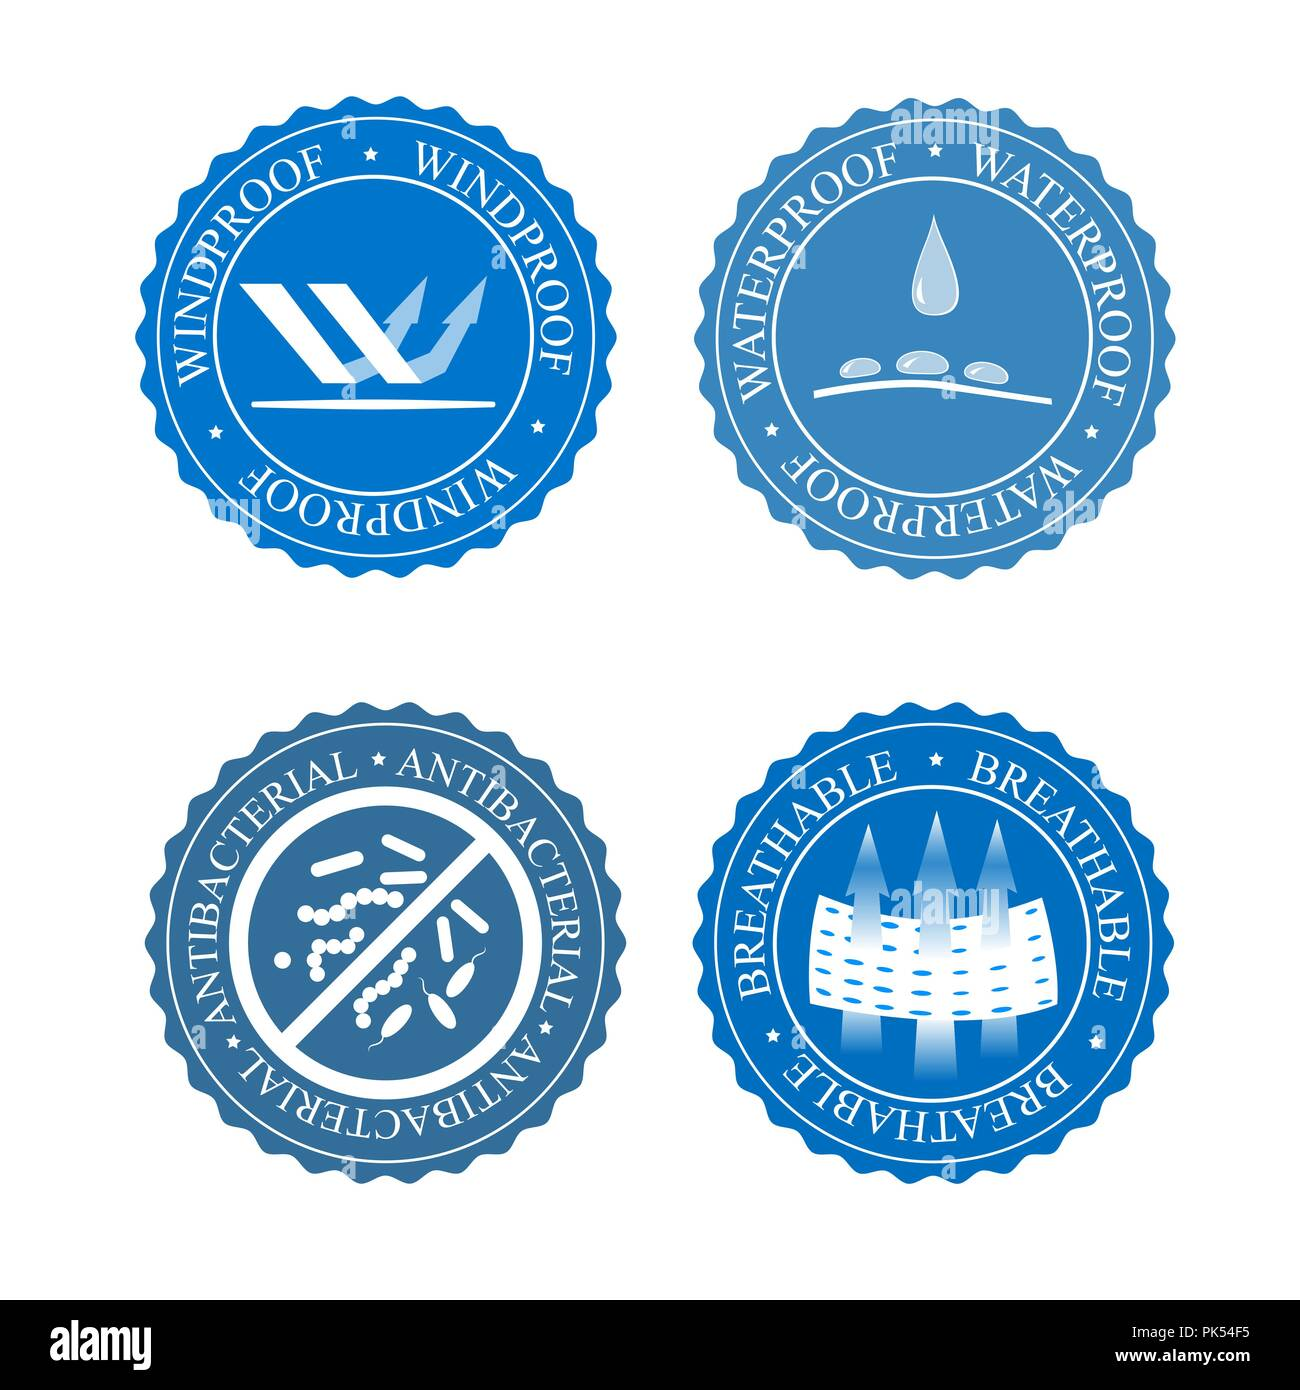 Vector icons set of fabric features. Wind proof, antibacterial, waterproof, and breathable wear labels. Textile industry pictogram for clothes line. - Stock Image